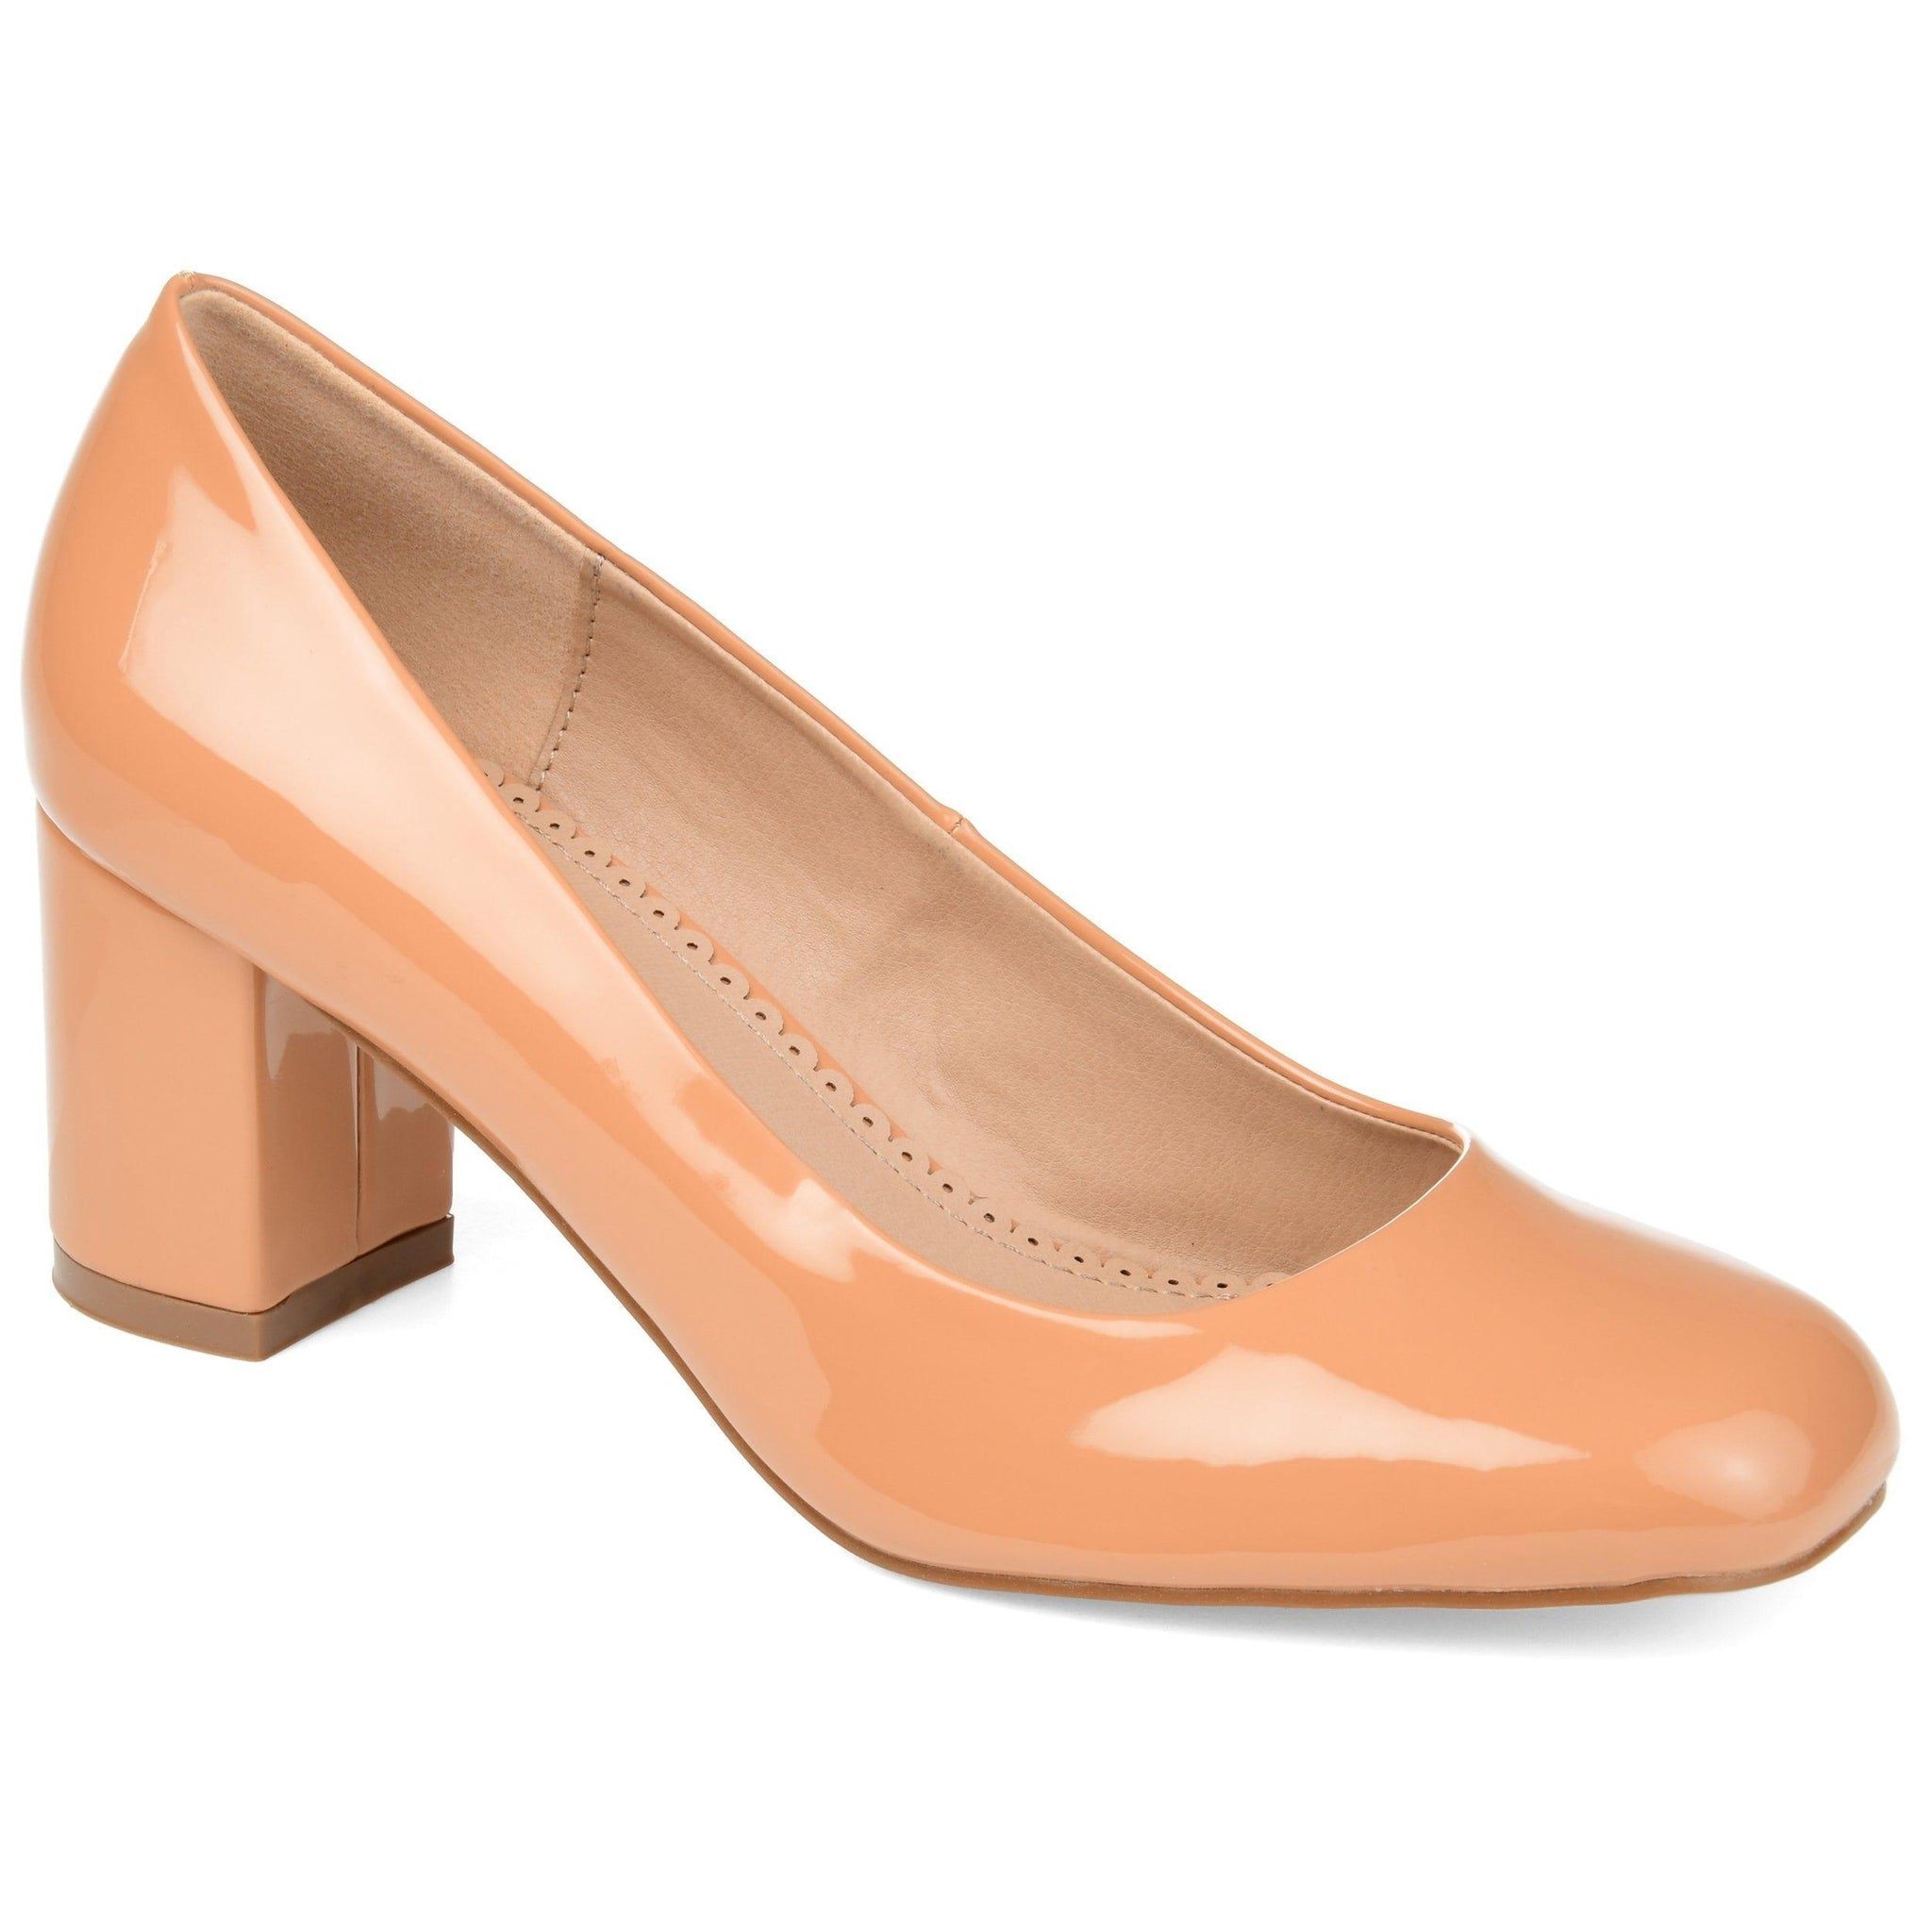 MIRANDA Shoes Journee Collection Tan 5.5